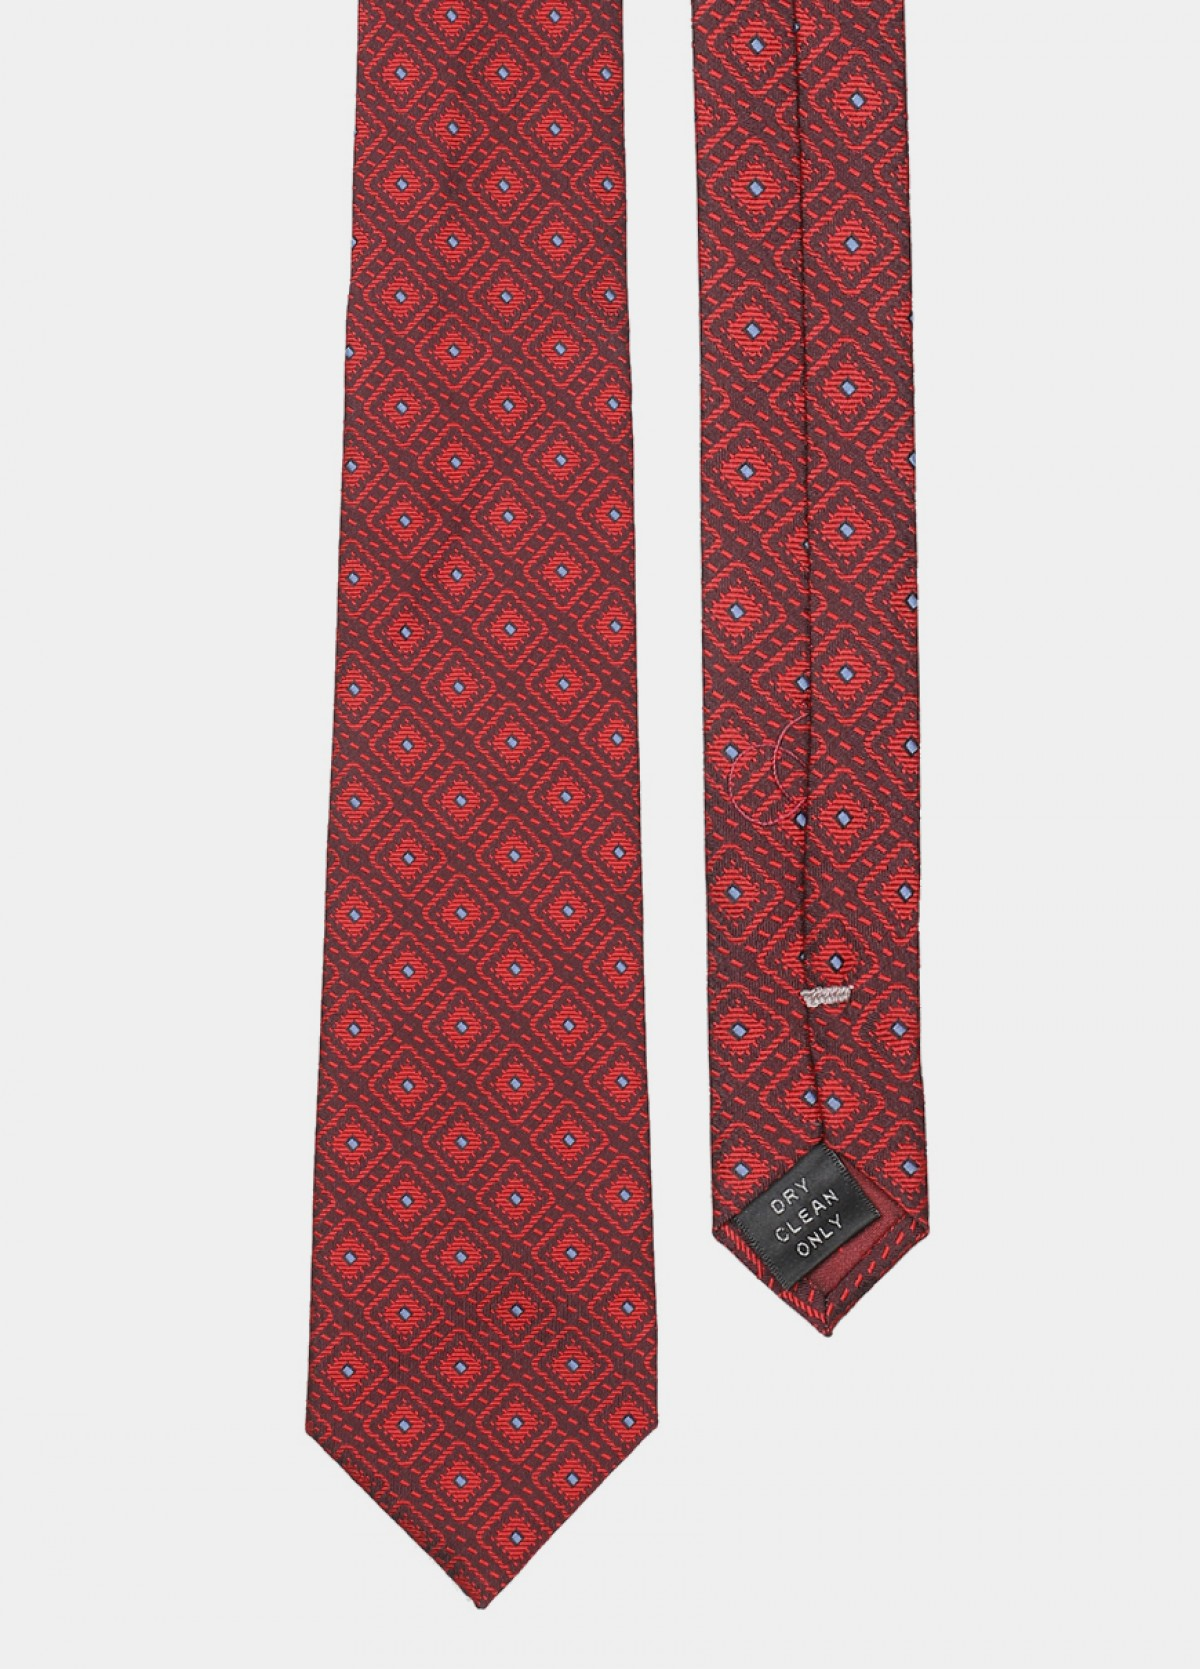 The Red Woven Tie